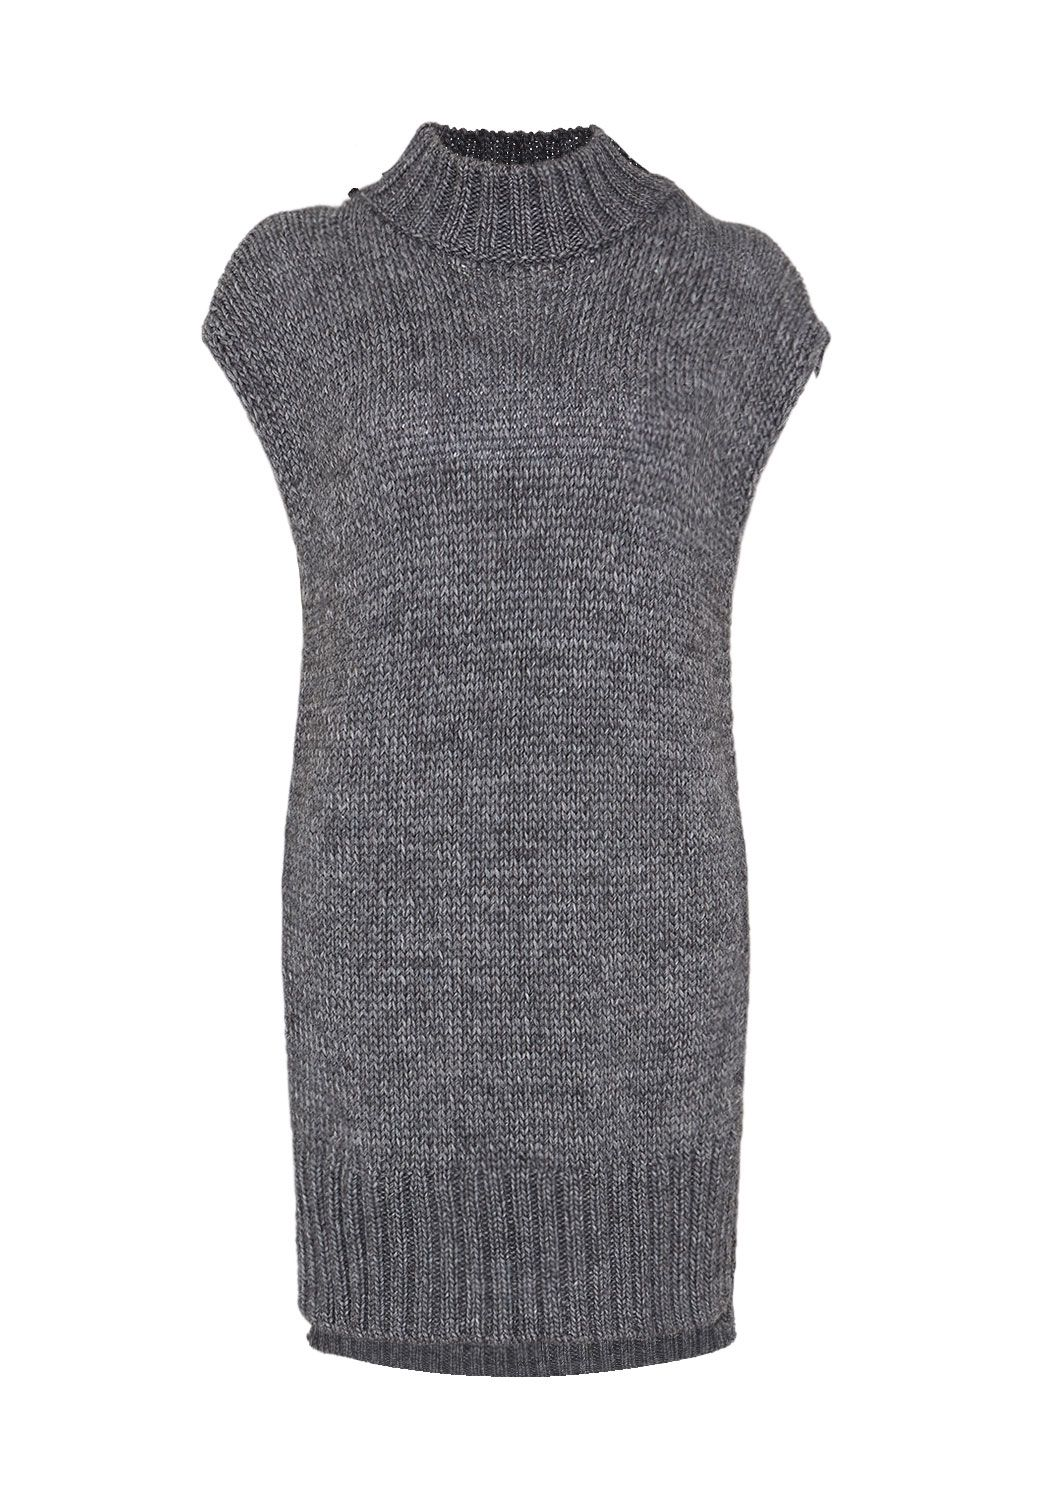 Hallhuber Hallhuber Chunky Knit Long Tunic, Grey